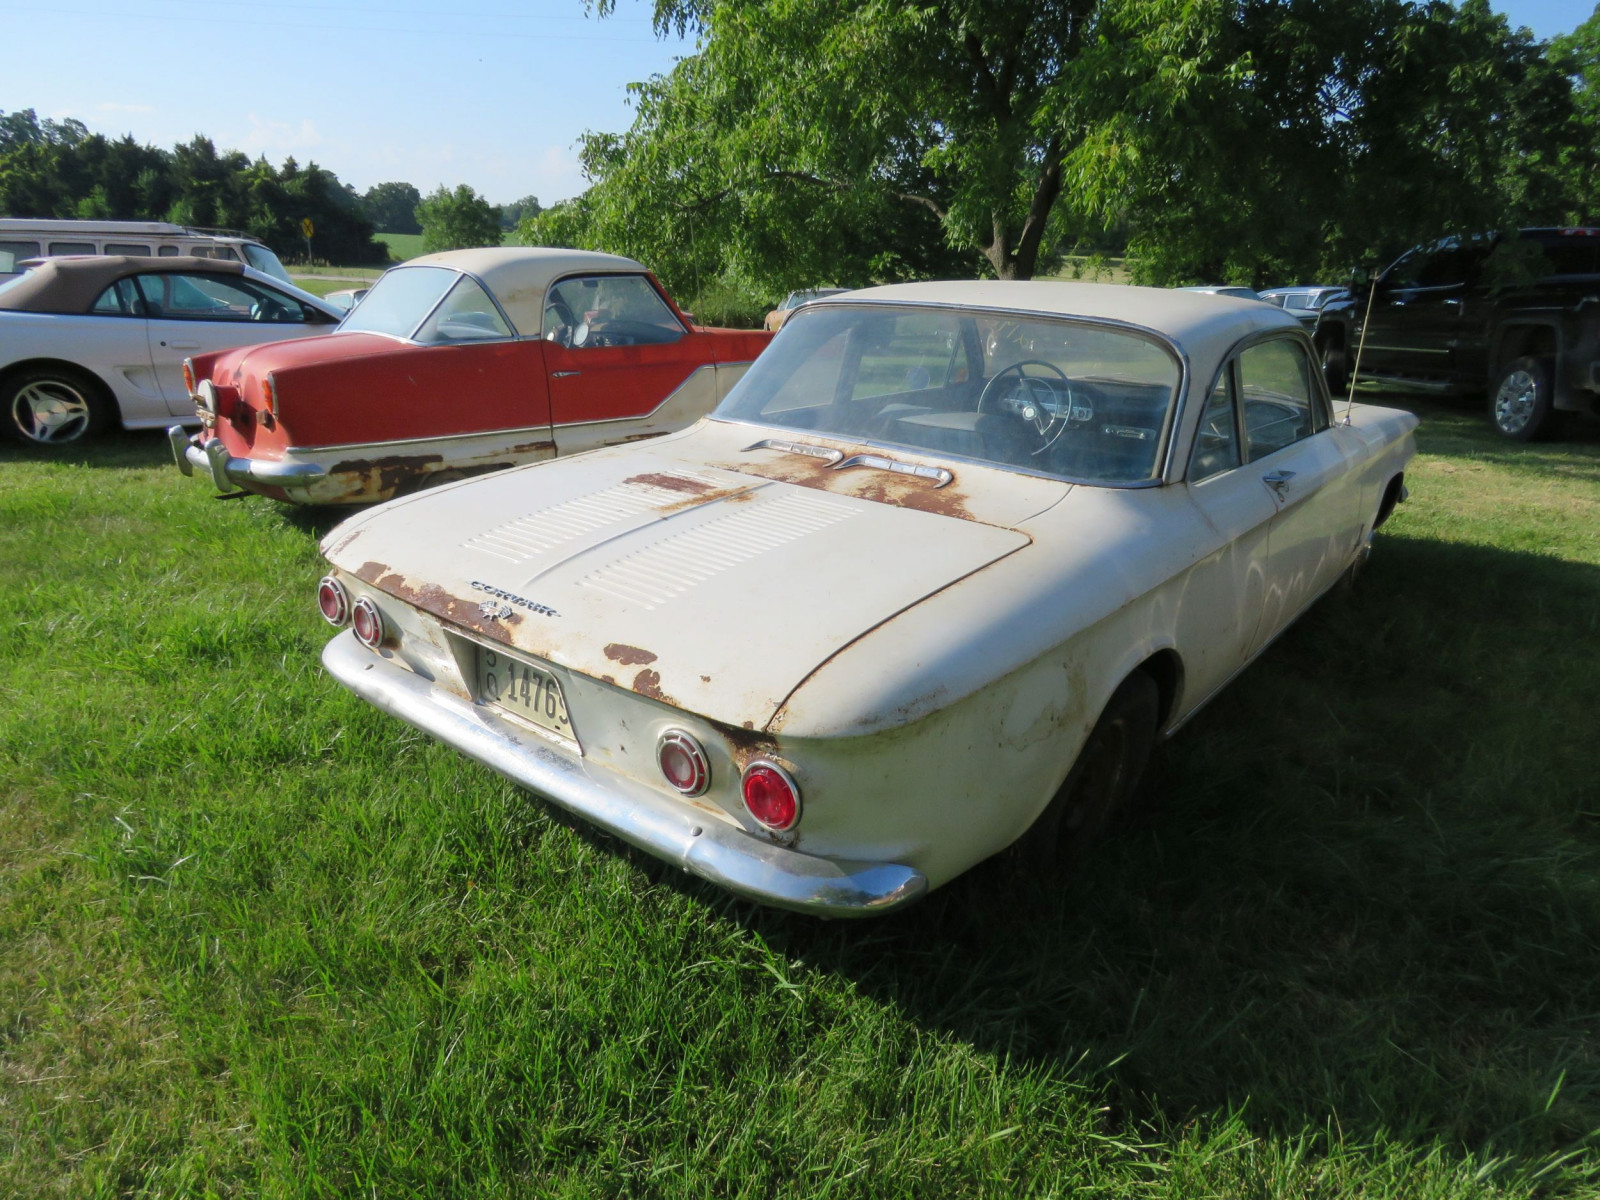 1962 Chevrolet Corvair Coupe - Image 5